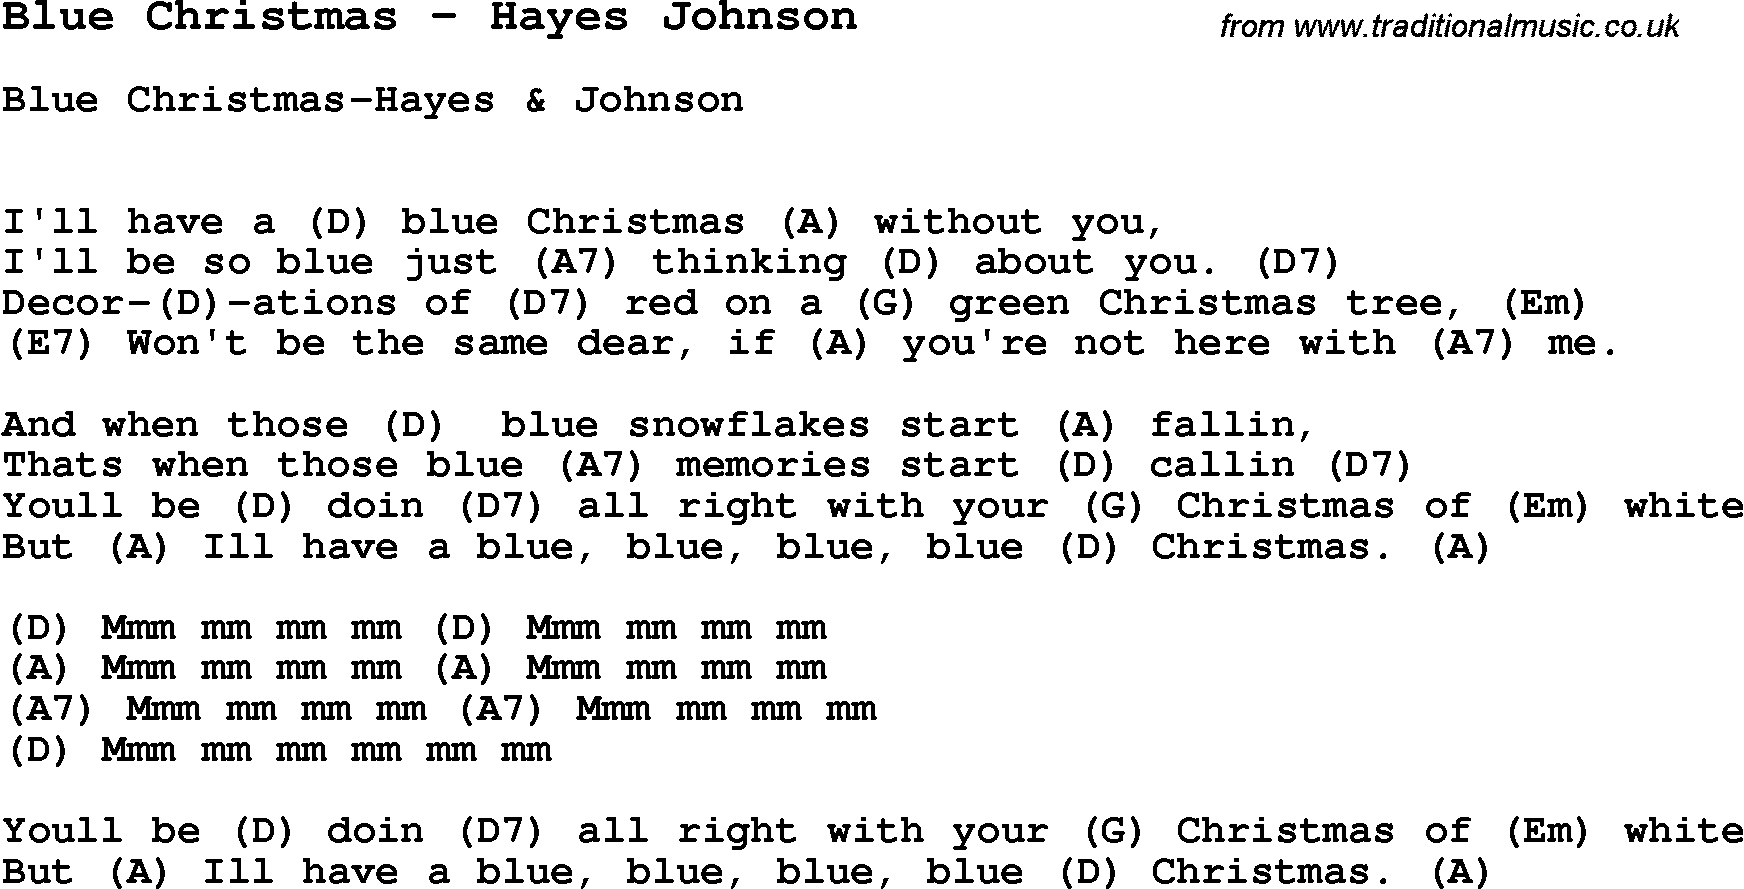 Song Blue Christmas by Hayes Johnson, song lyric for vocal ...